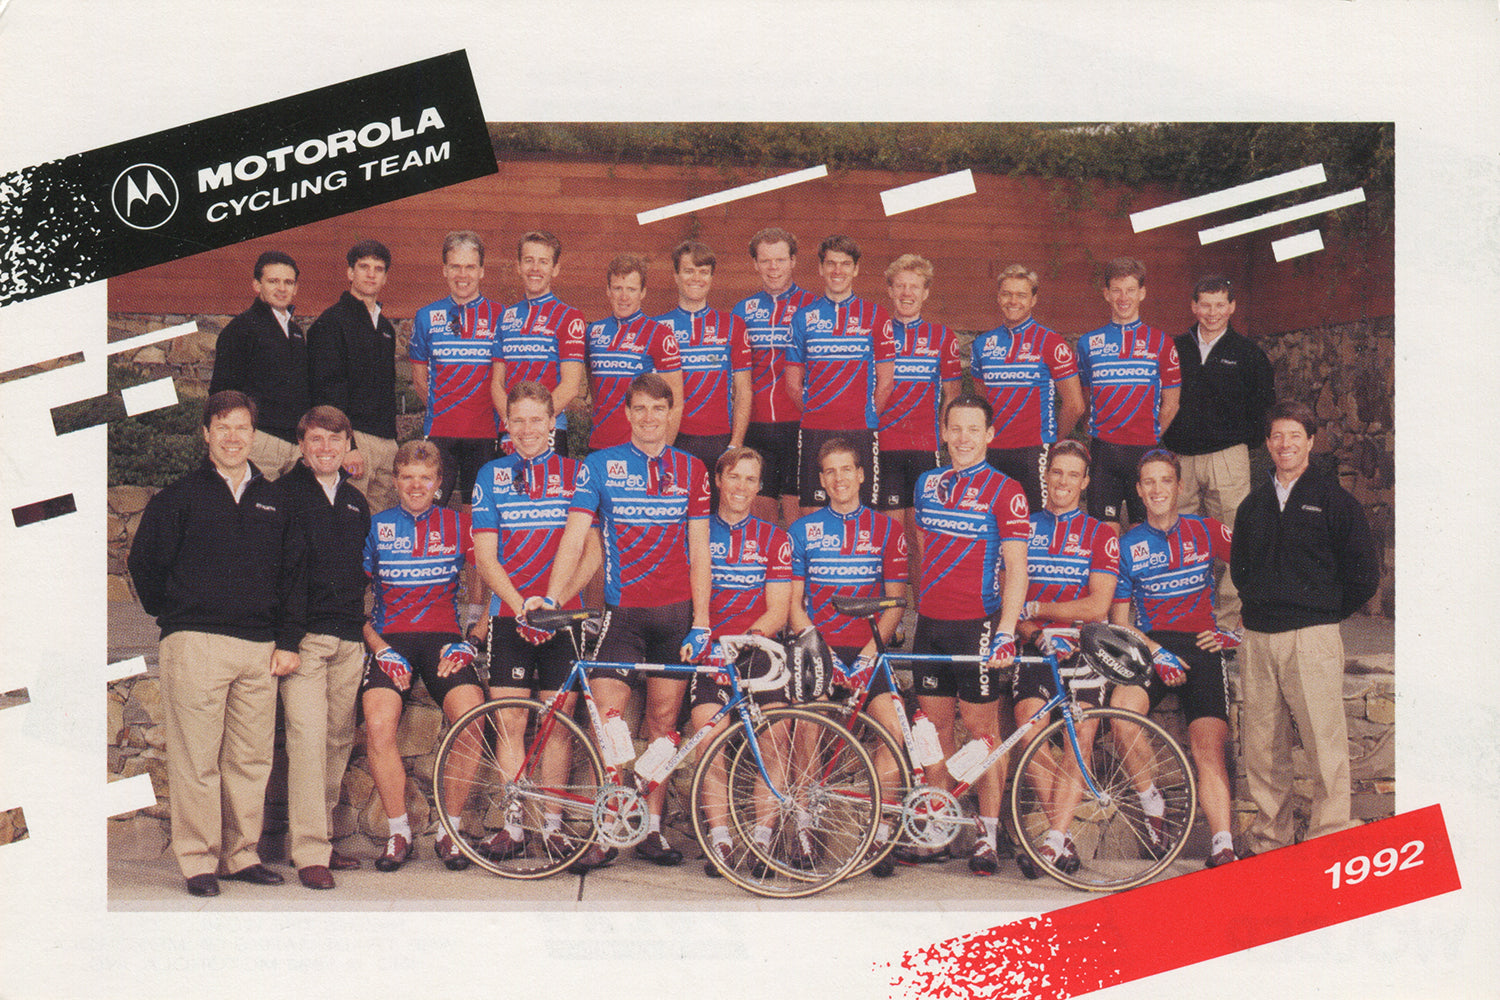 Motorola cycling team postcard from the 1992 season featuring some nifty corporate chinos!